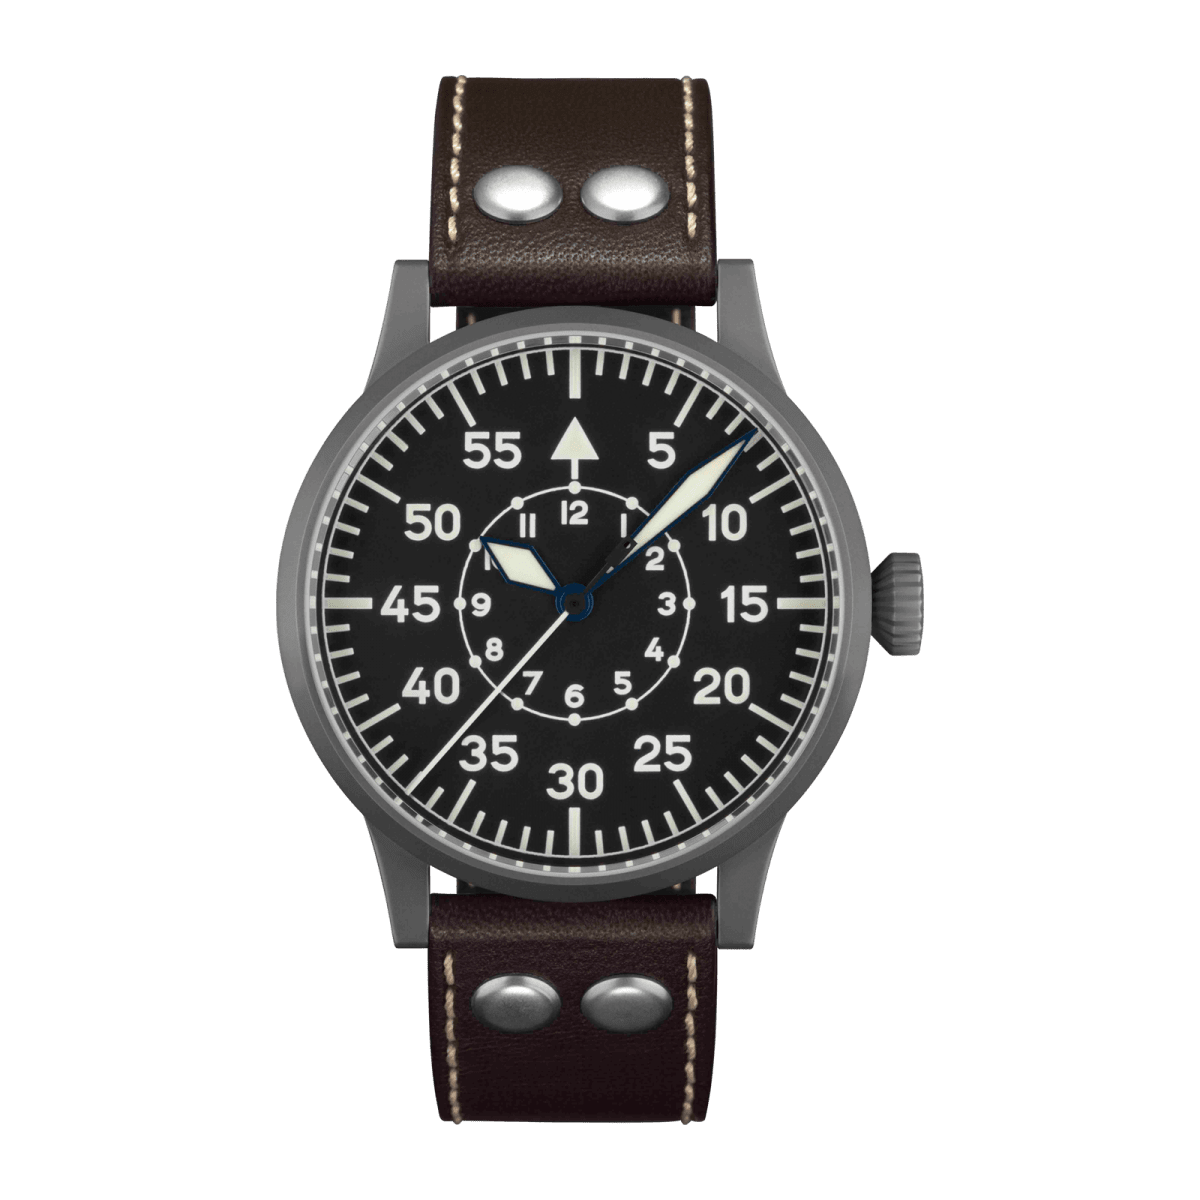 d8e8553d26a Pilot Watch original by Laco watches